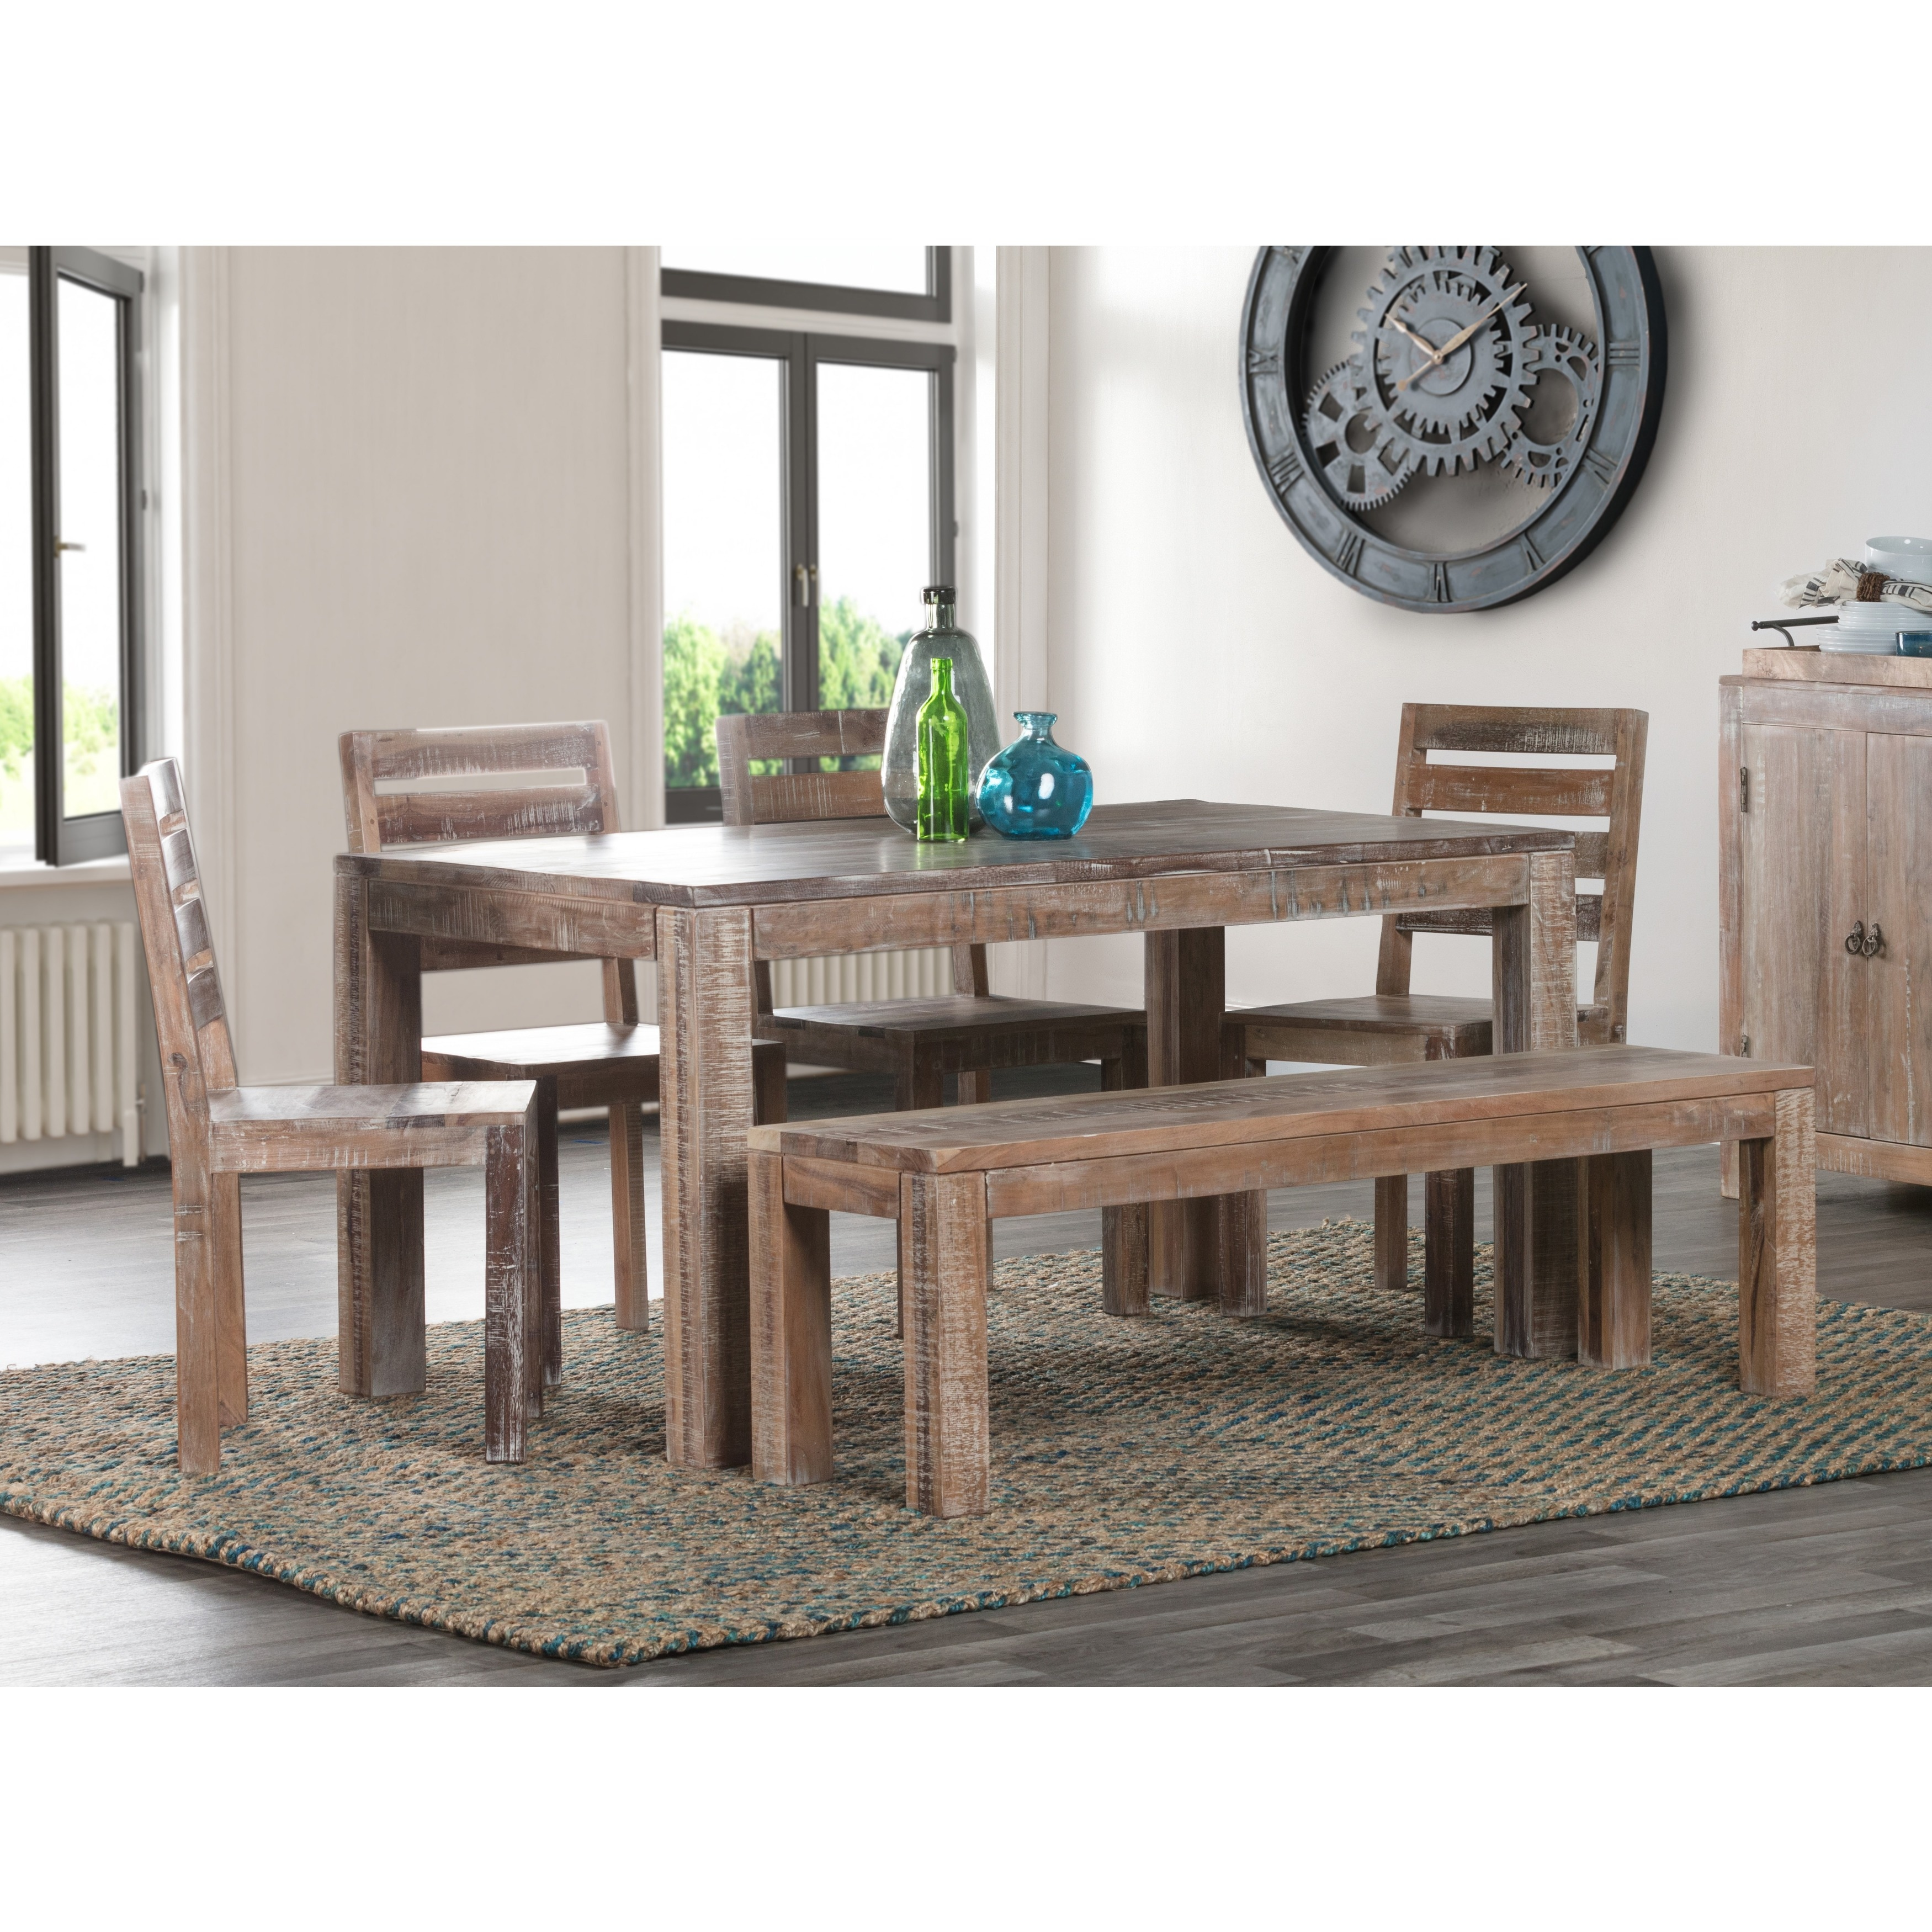 Shop Carbon Loft Karplus Reclaimed Wood Inch Dining Table Free - 60 inch reclaimed wood dining table